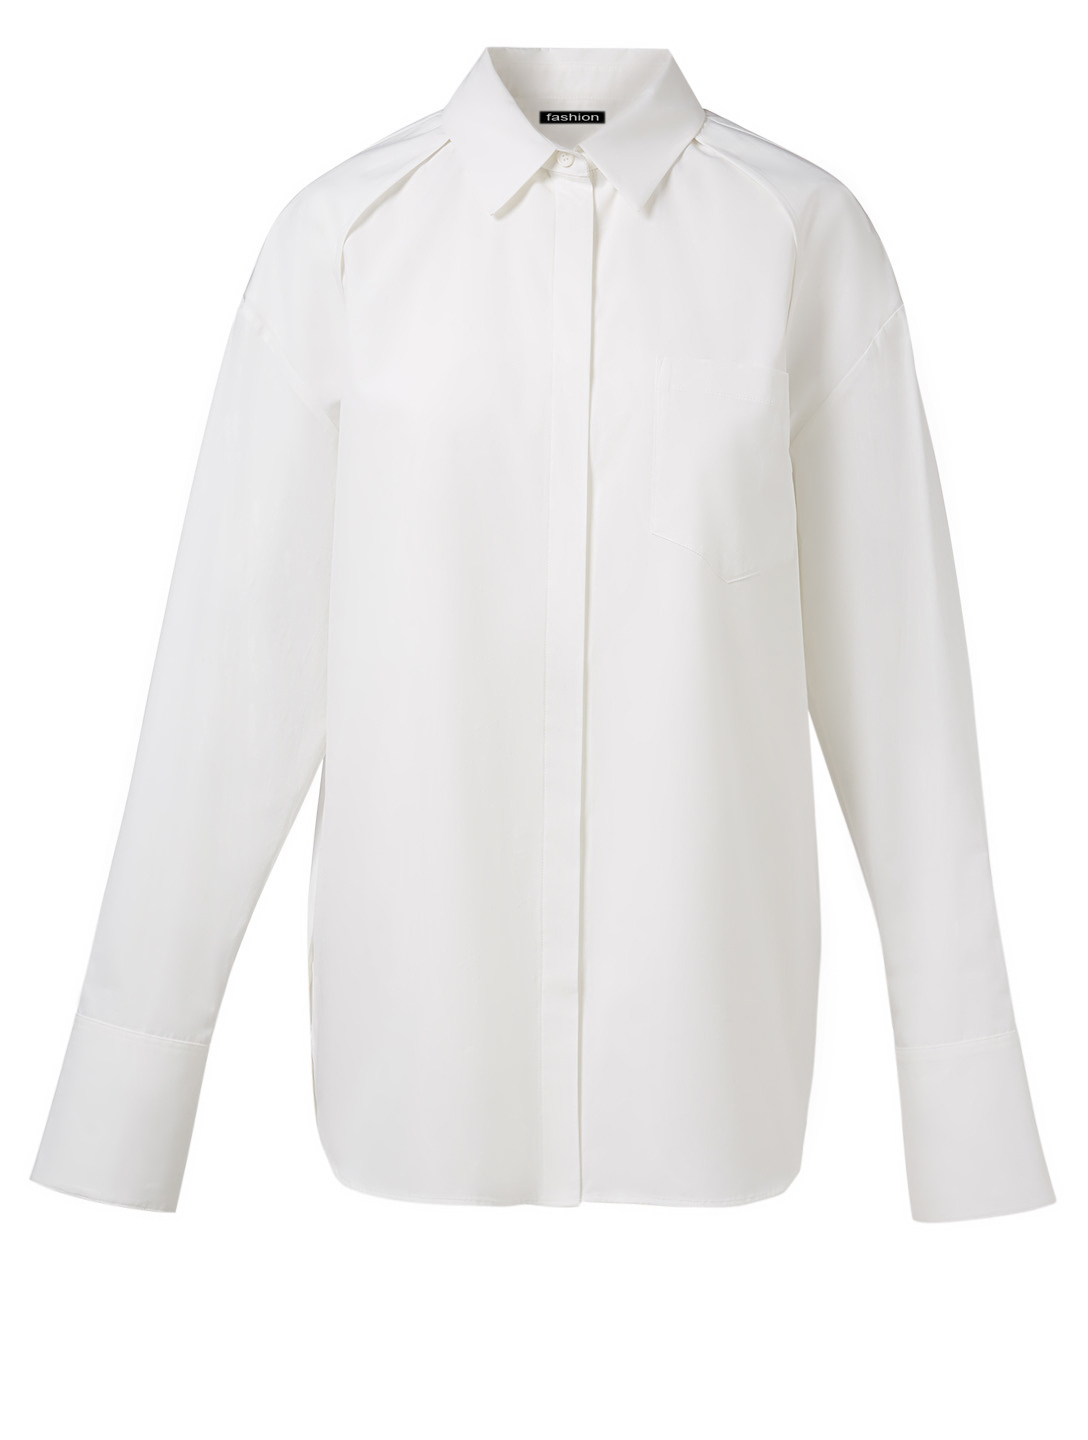 JUUN J Convertible Button-Up Shirt Women's White